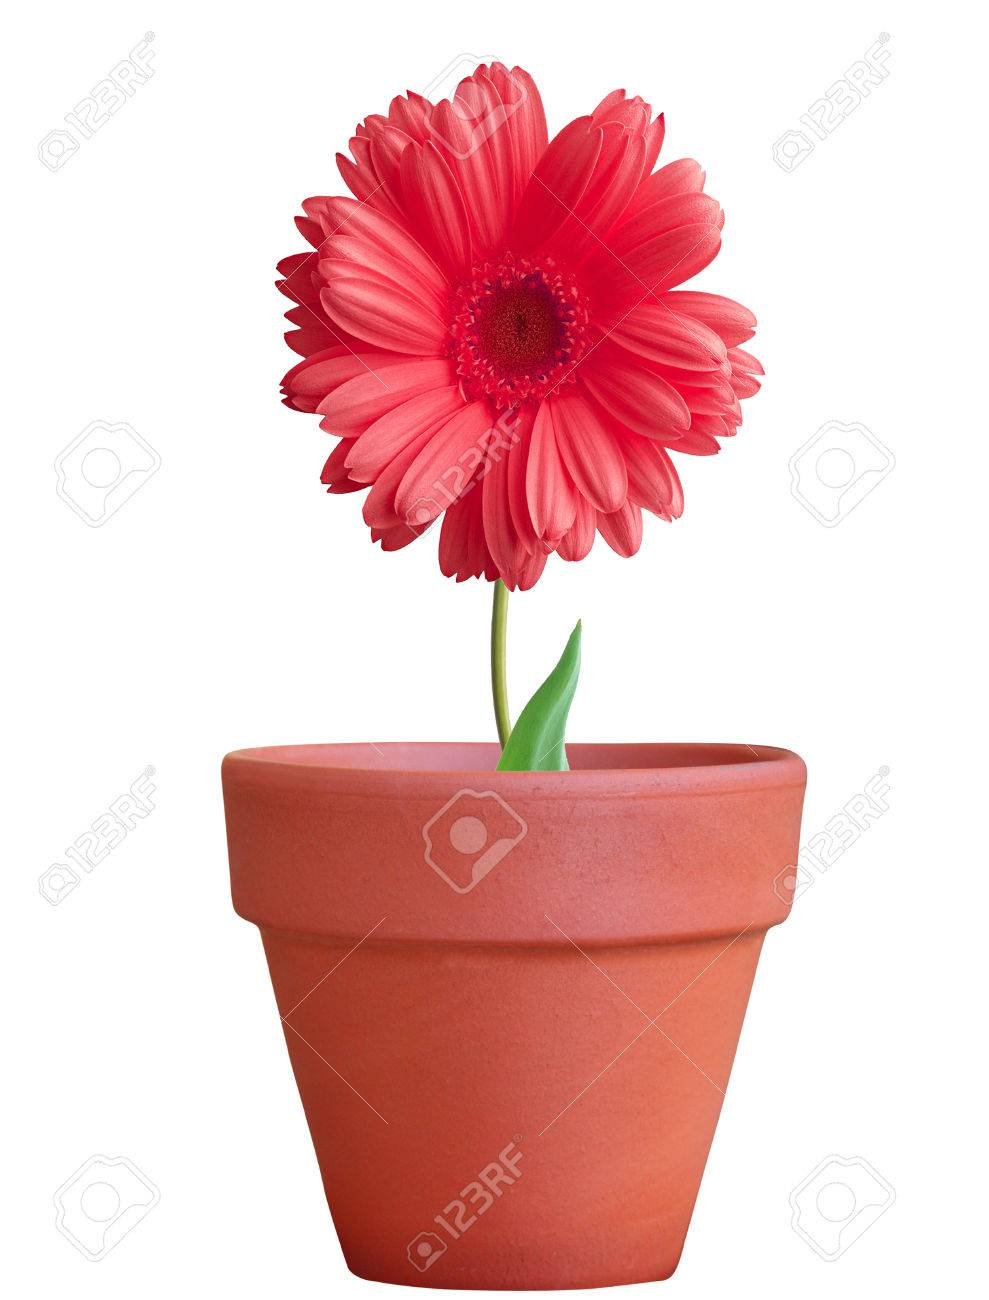 flower in pot isolated on white background - 52027698